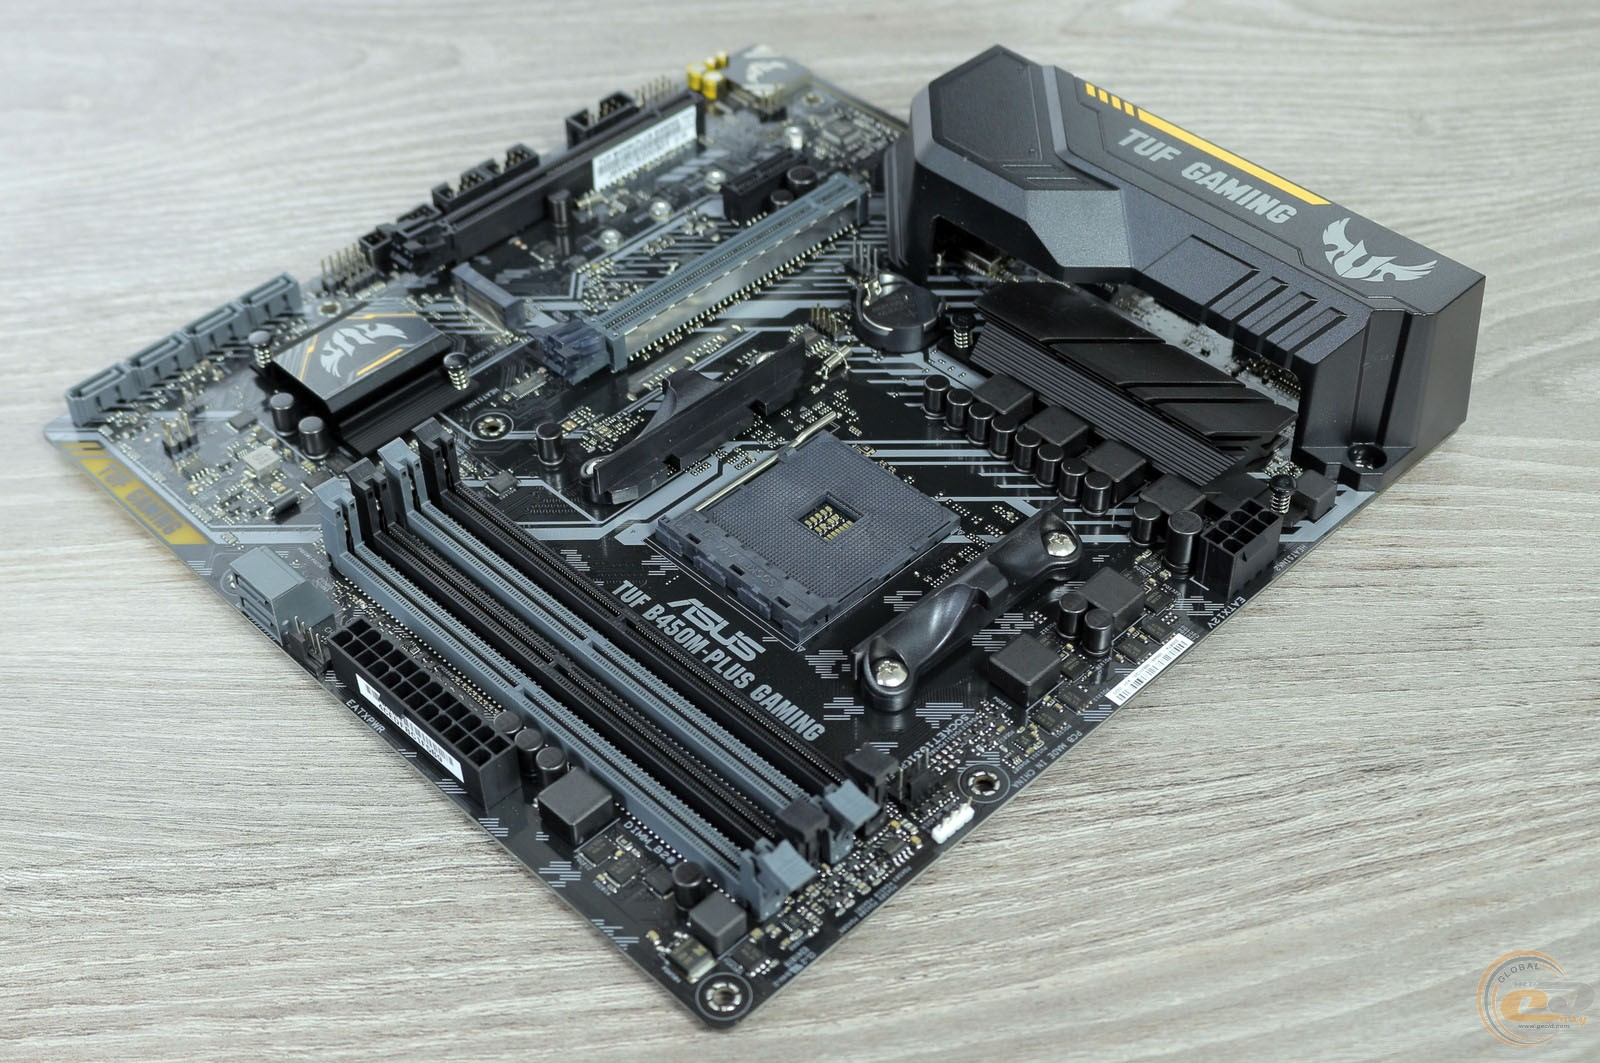 ASUS TUF B350M-PLUS GAMING компоновка